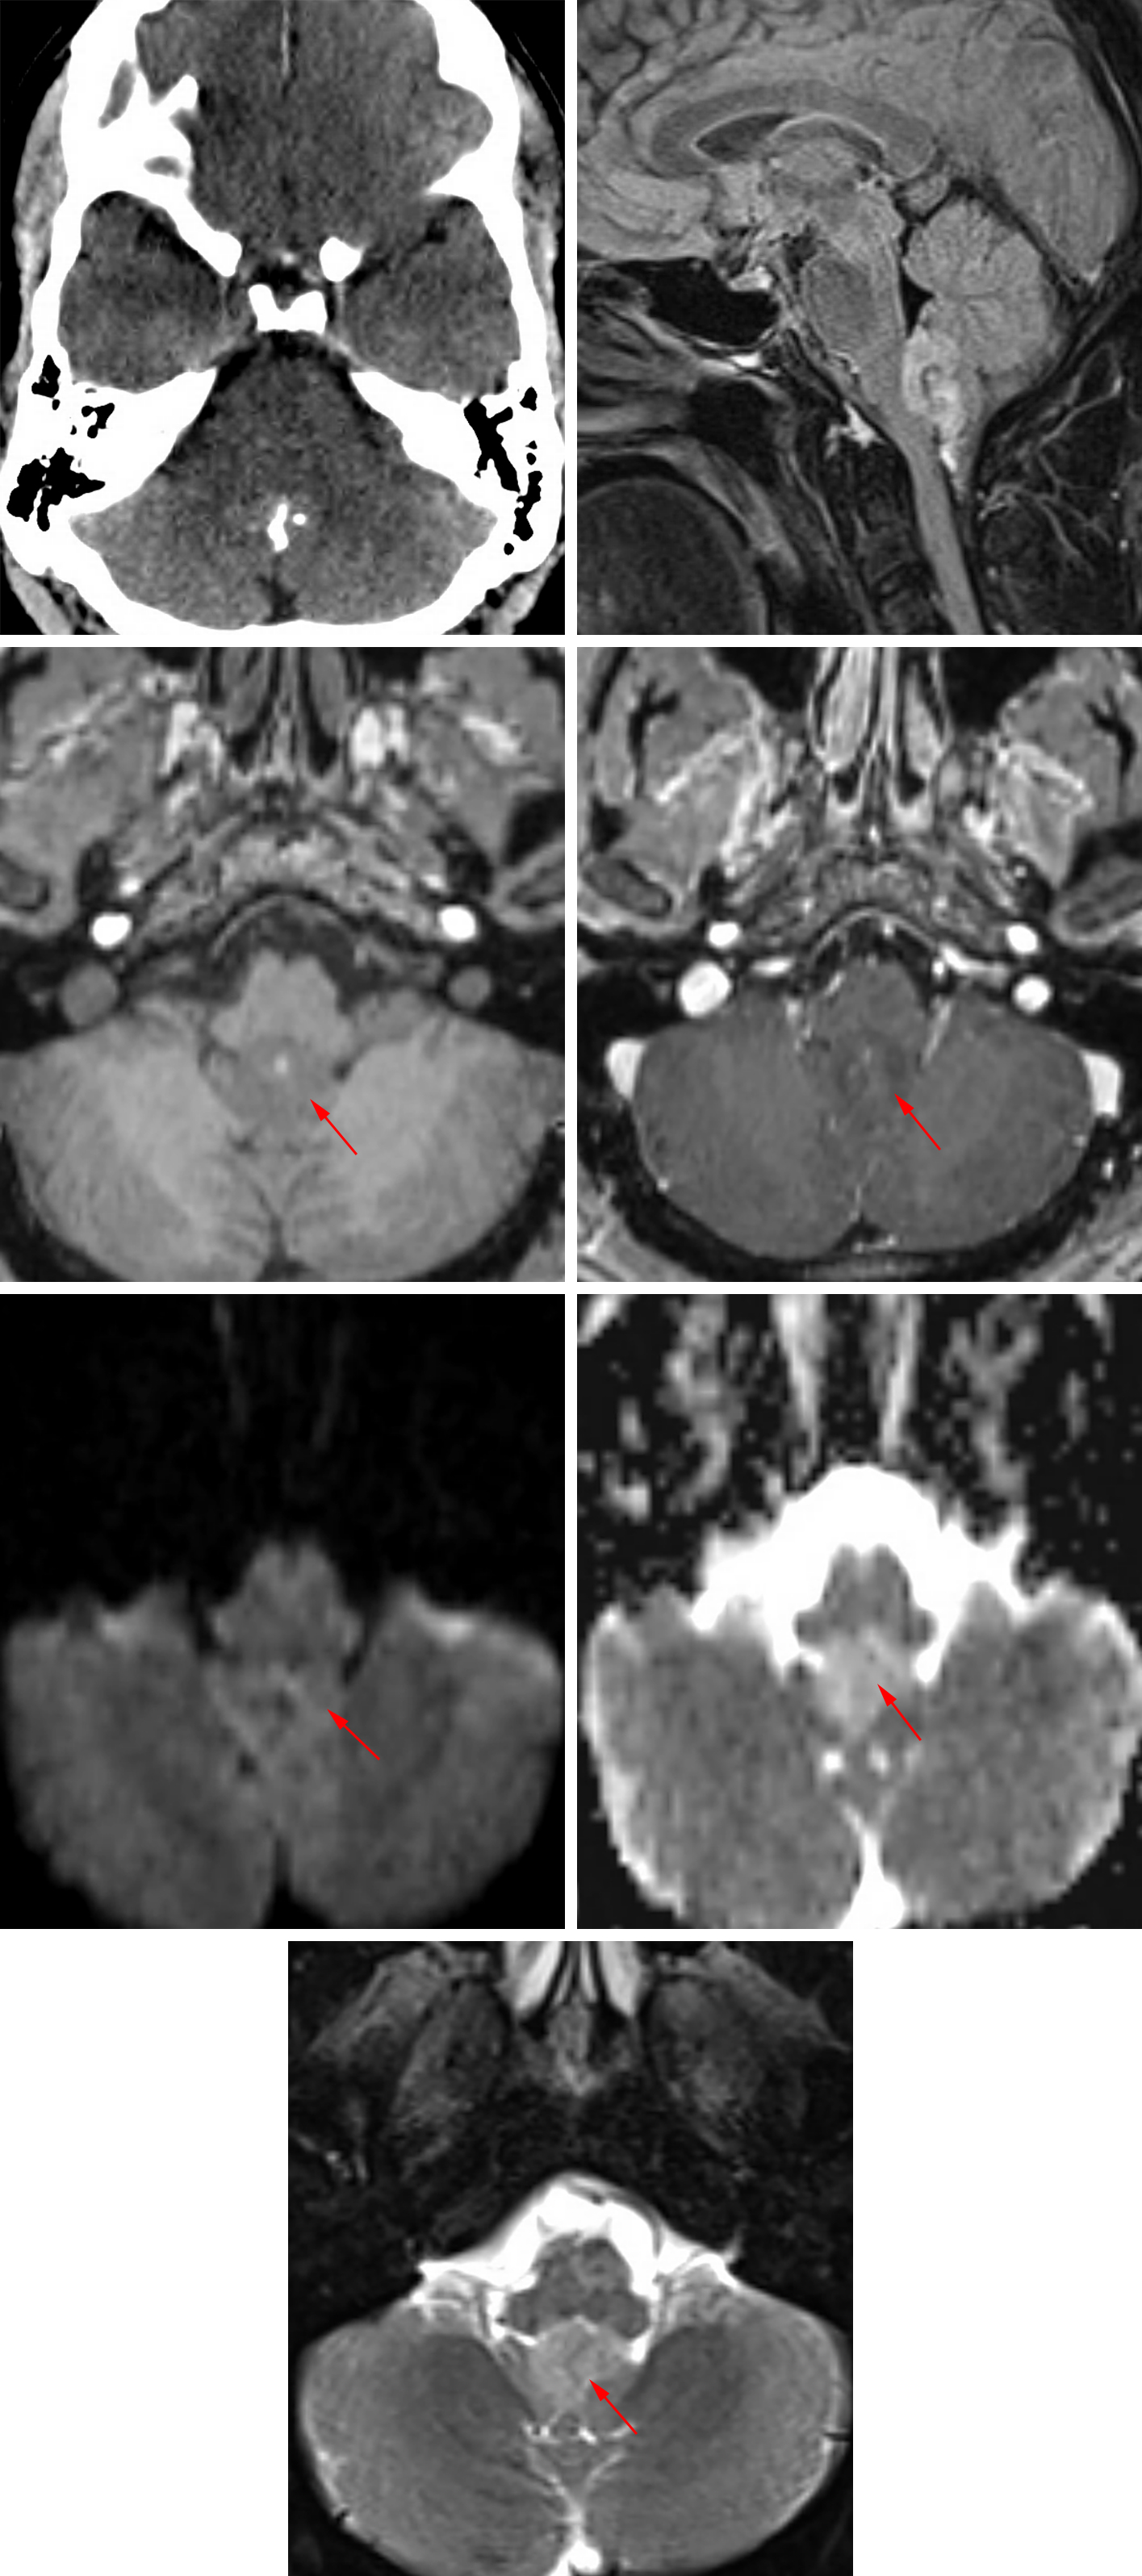 Figure 3: Axial non-contrast head CT demonstrates a calcified lesion in the 4th ventricle. Sagittal FLAIR (top row right), axial T1 without contrast (second row left), axial T1 post-contrast (second row right), DWI (third row left), ADC (third row right), and axial T2FS (bottom row) images demonstrate a non-enhancing mass arising from the floor of the 4th ventricle without restricted diffusion. The appearance and location of this lesion are classic for subependymoma.